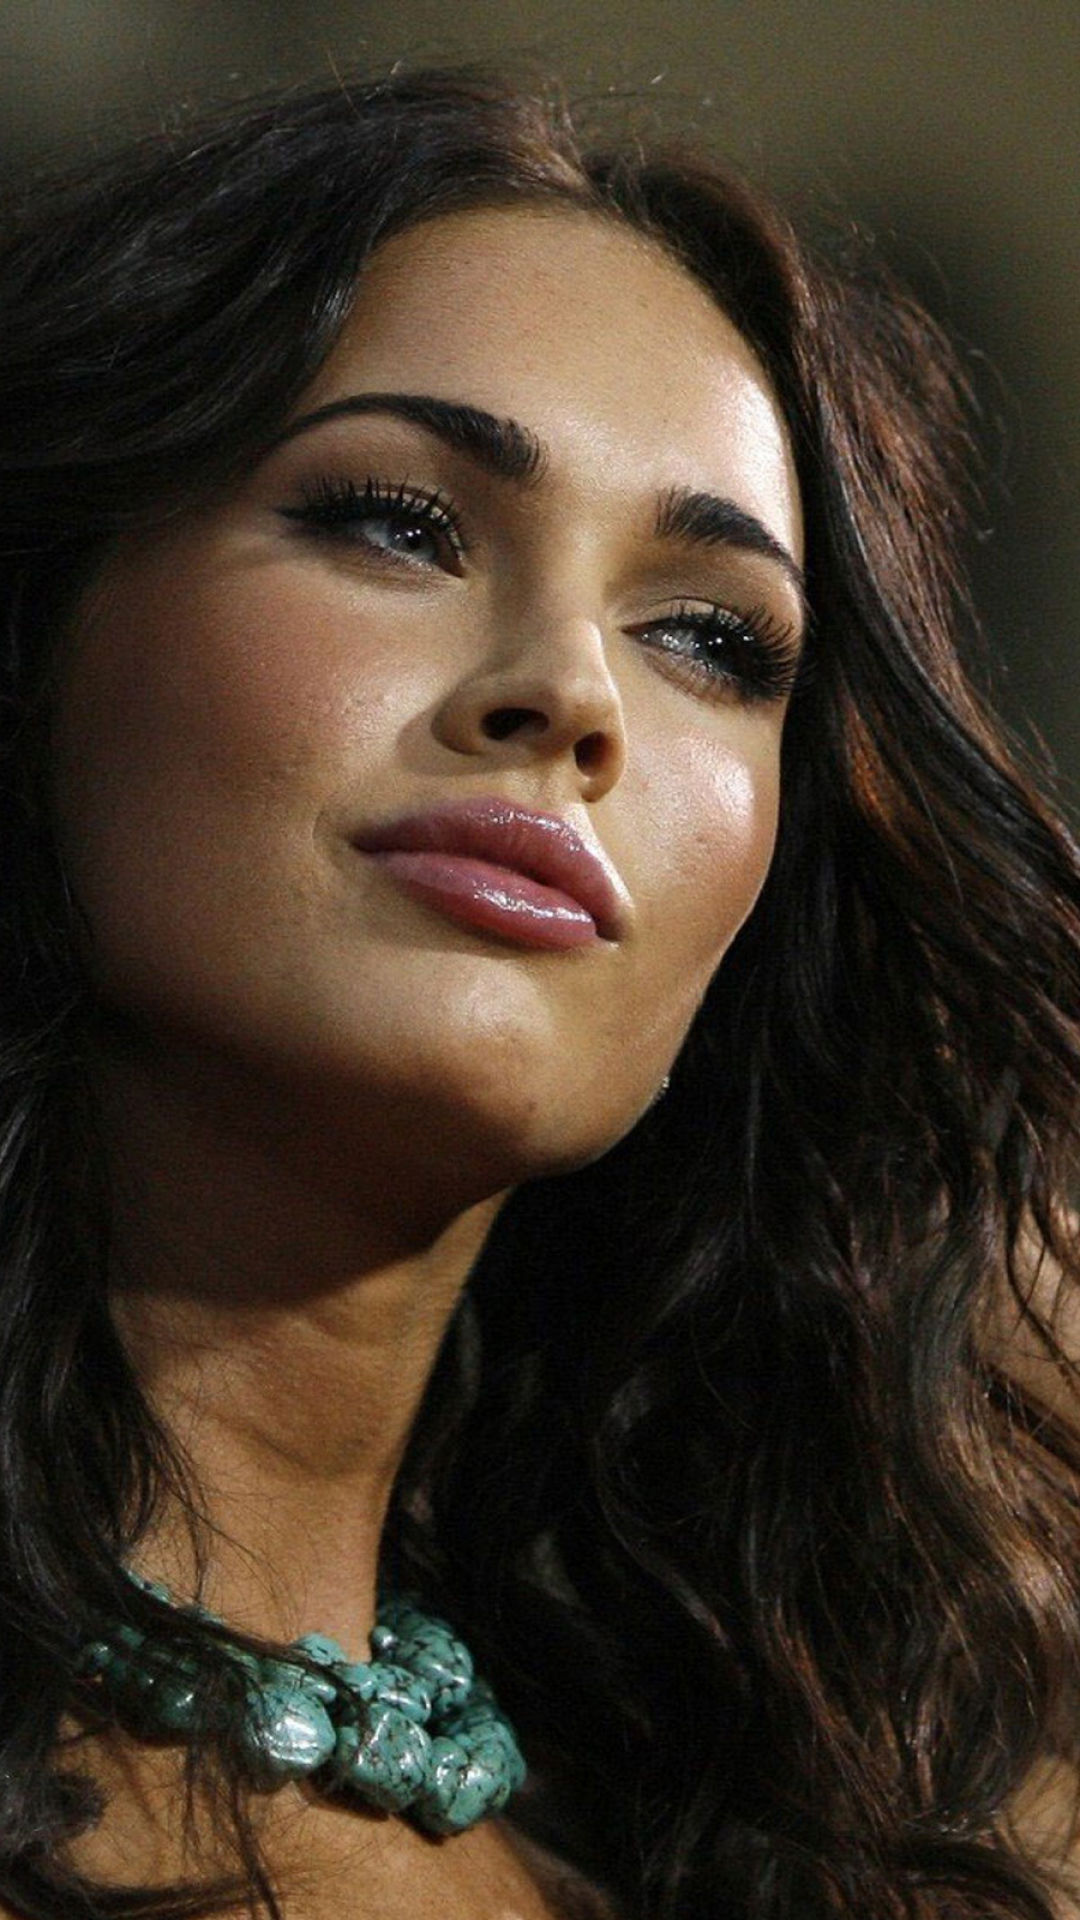 Megan Fox glamor